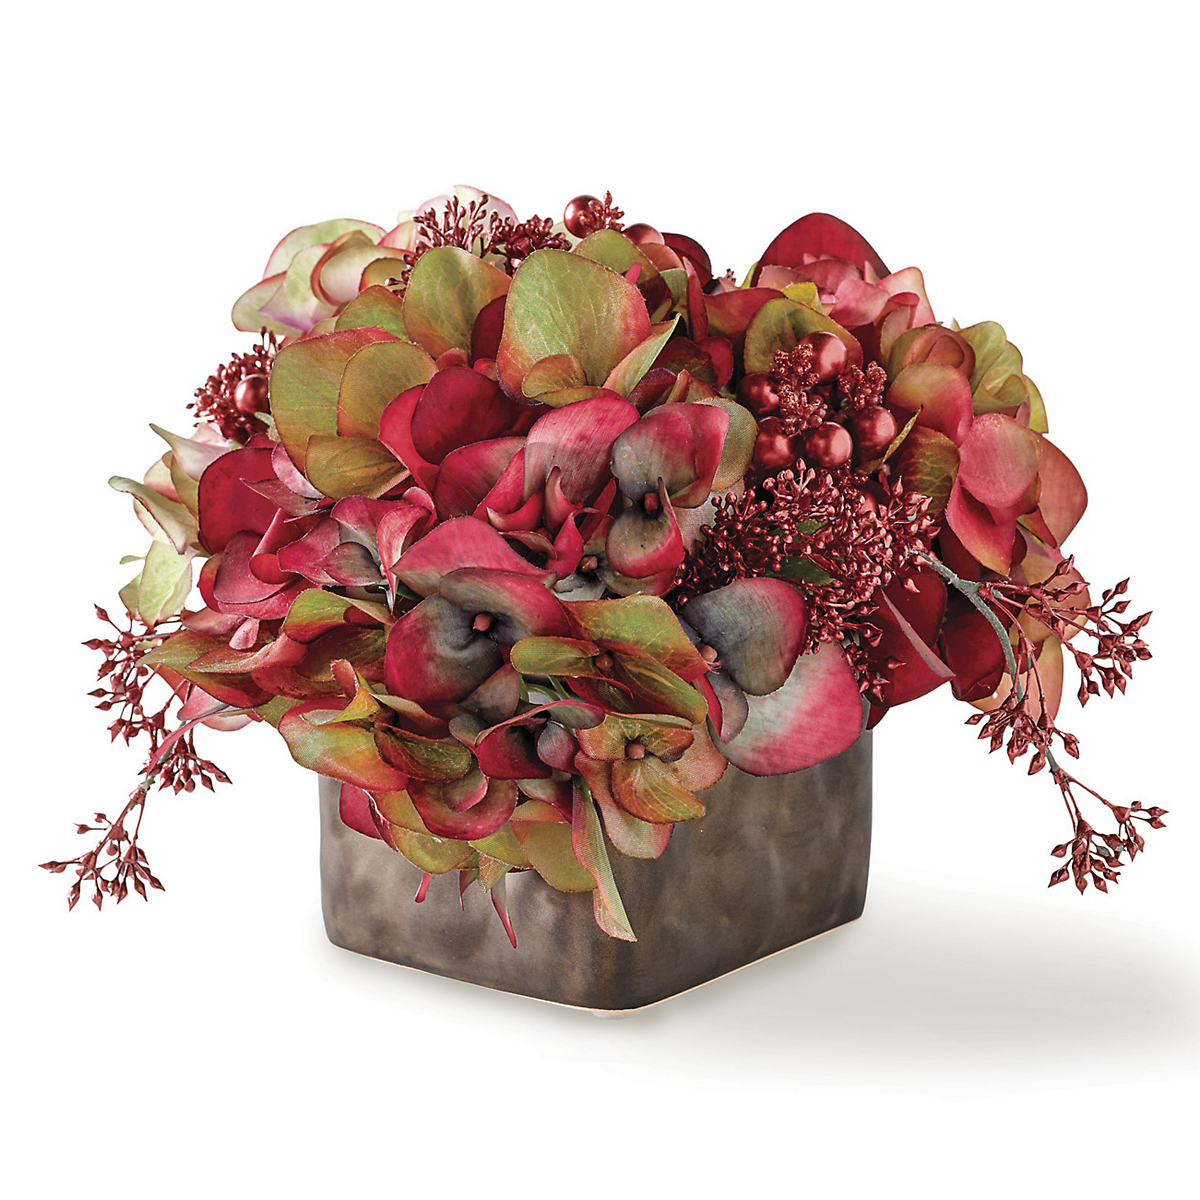 Sugar Plum Arrangement